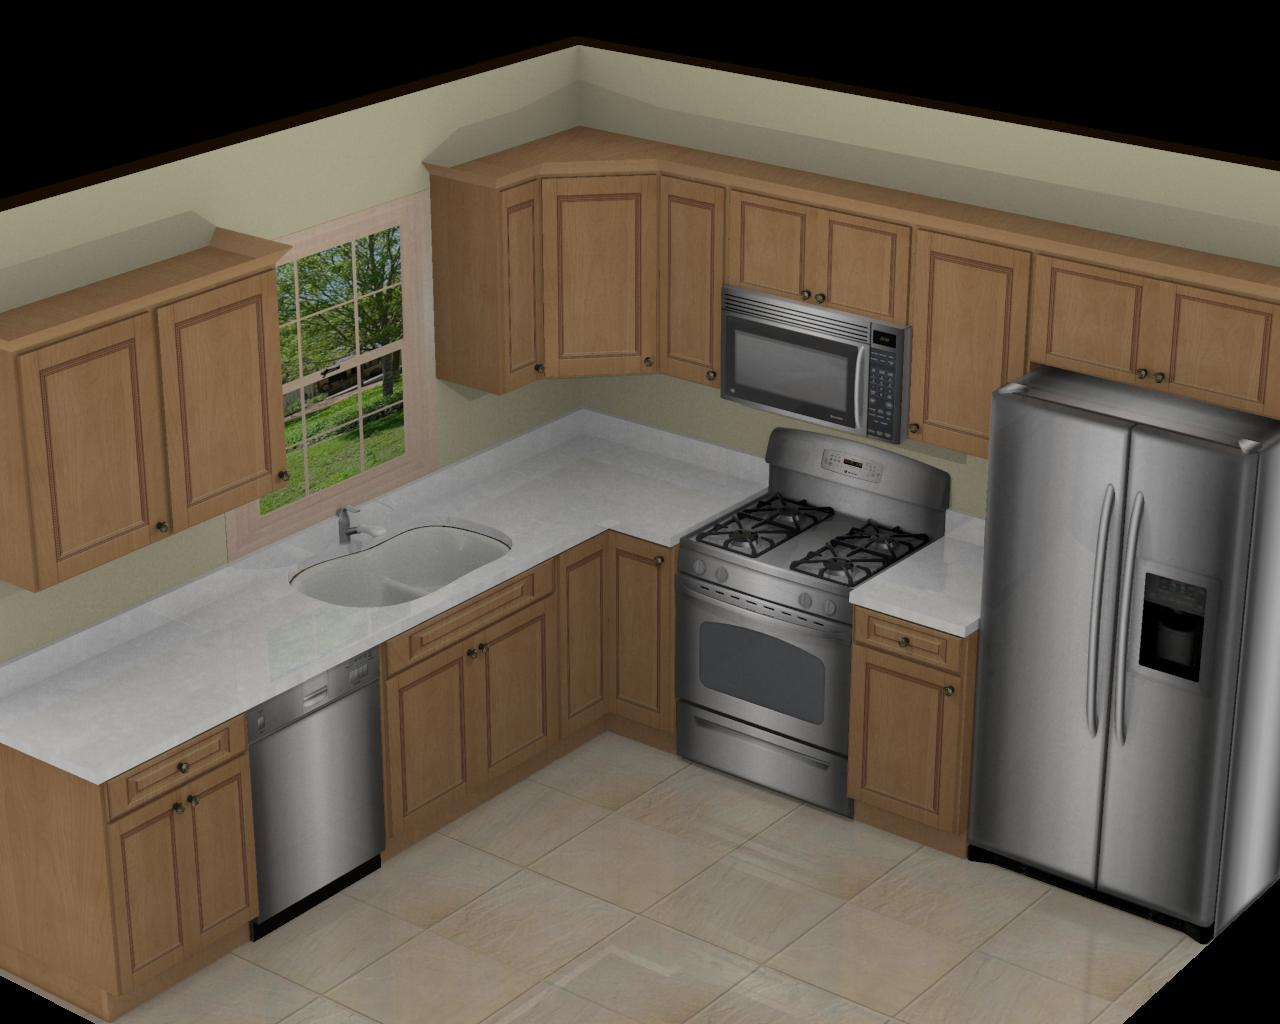 Foundation dezin decor 3d kitchen model design - Kitchen remodel designs ...